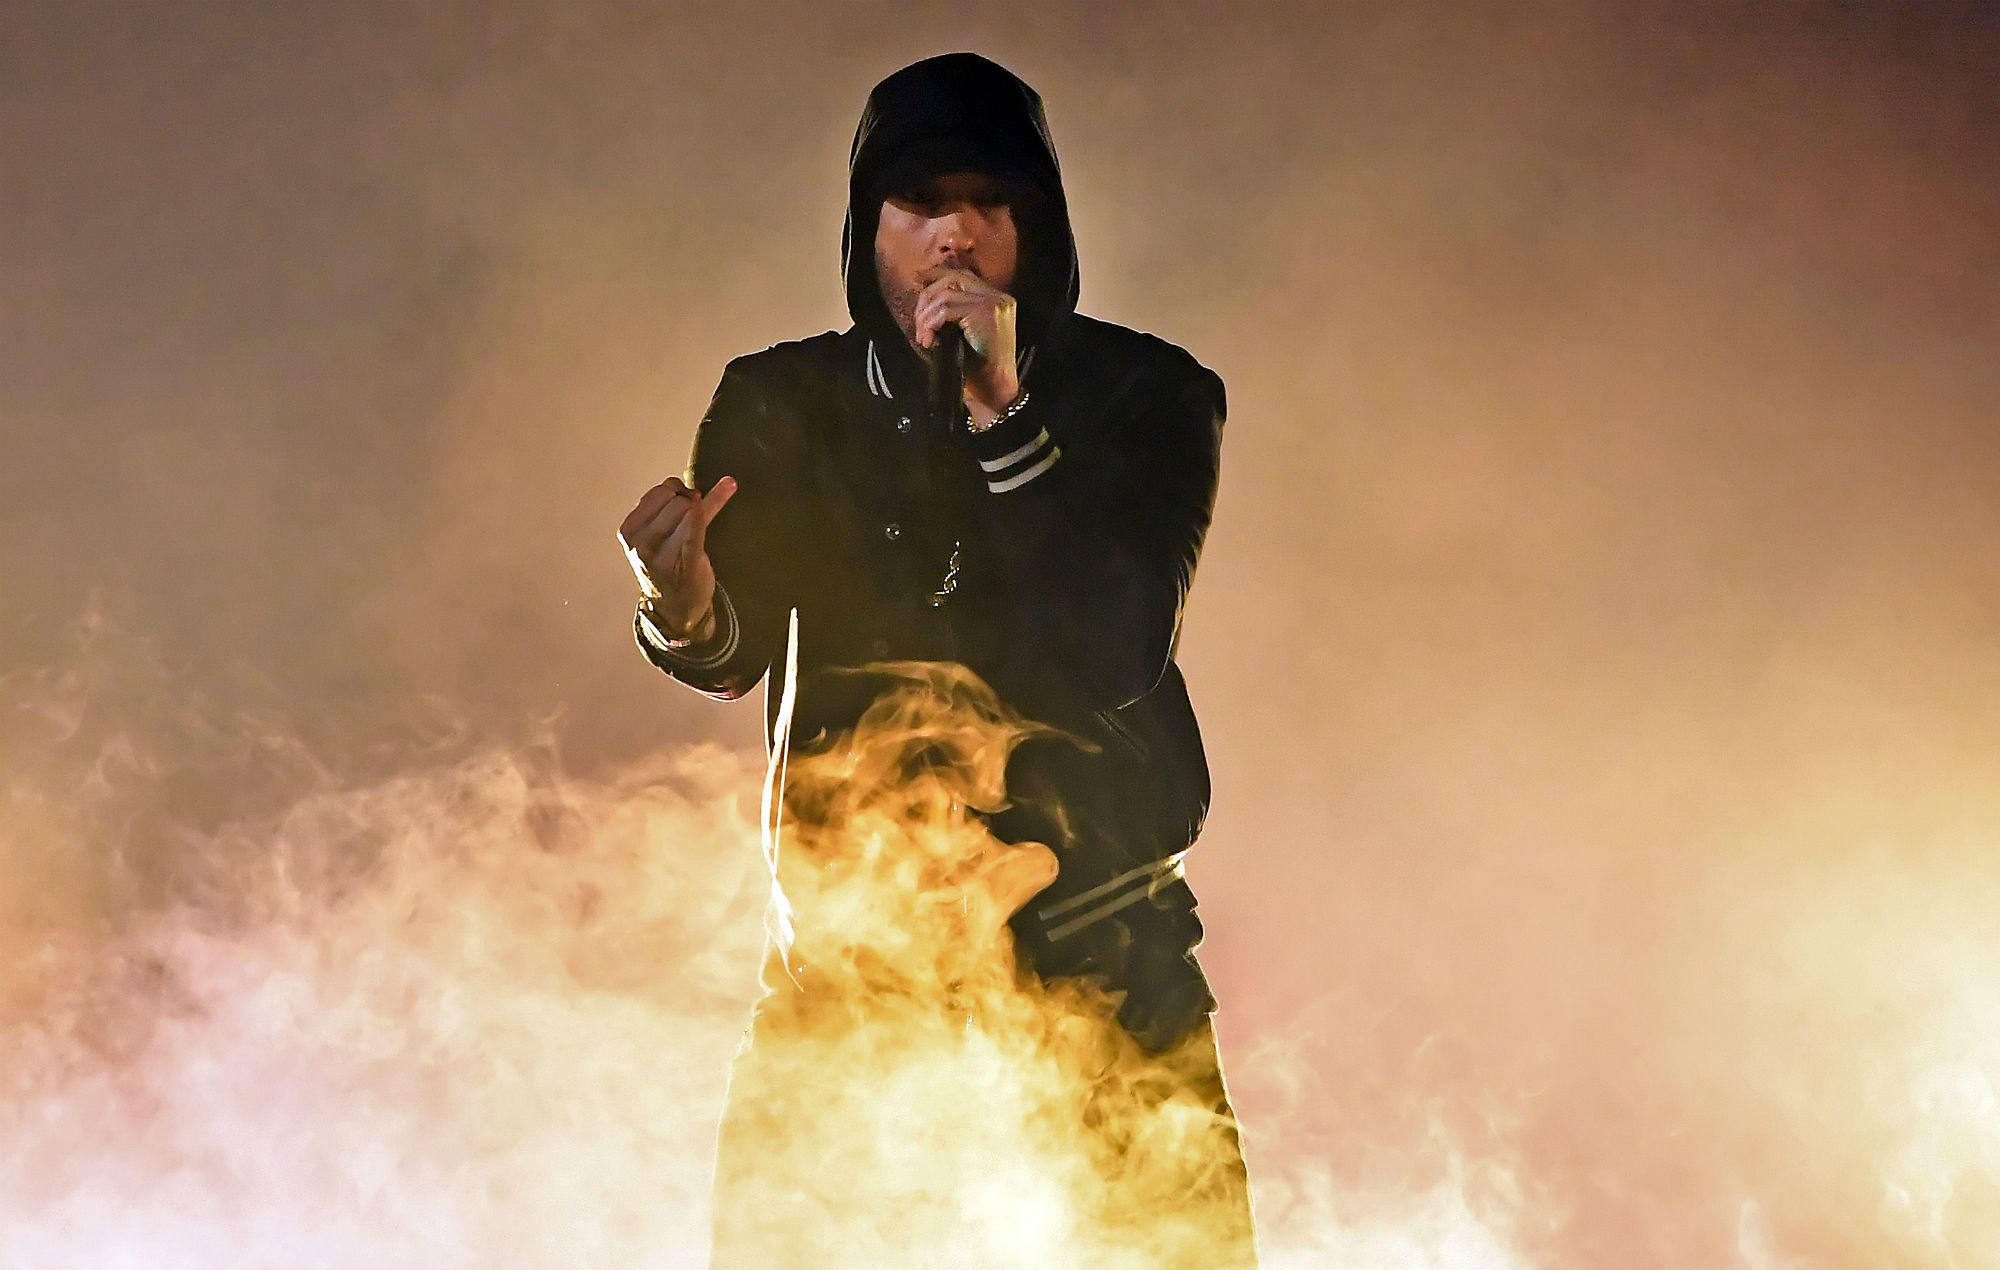 Joyner Lucas confirms that Eminem will feature on new album